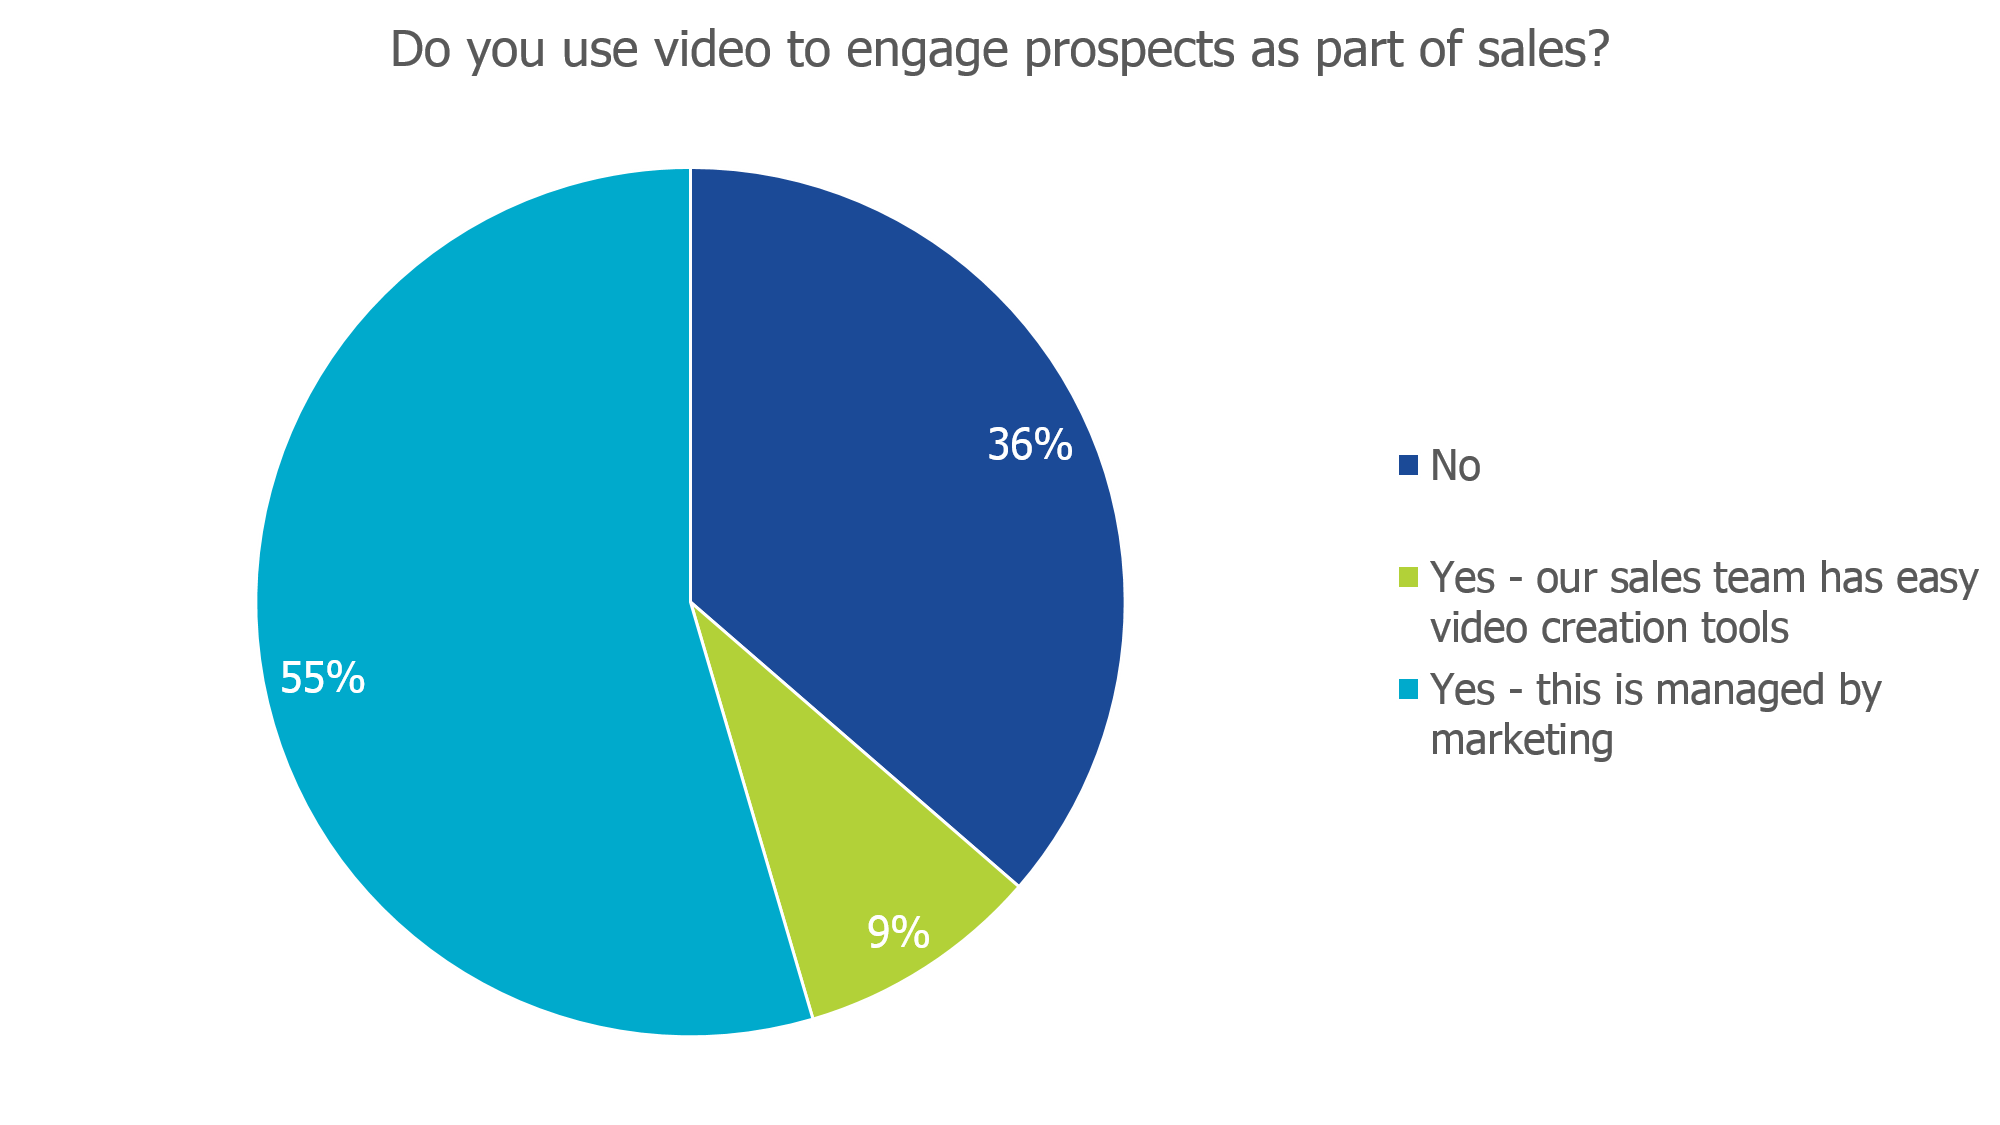 How many use video to engage prospects as part of sales